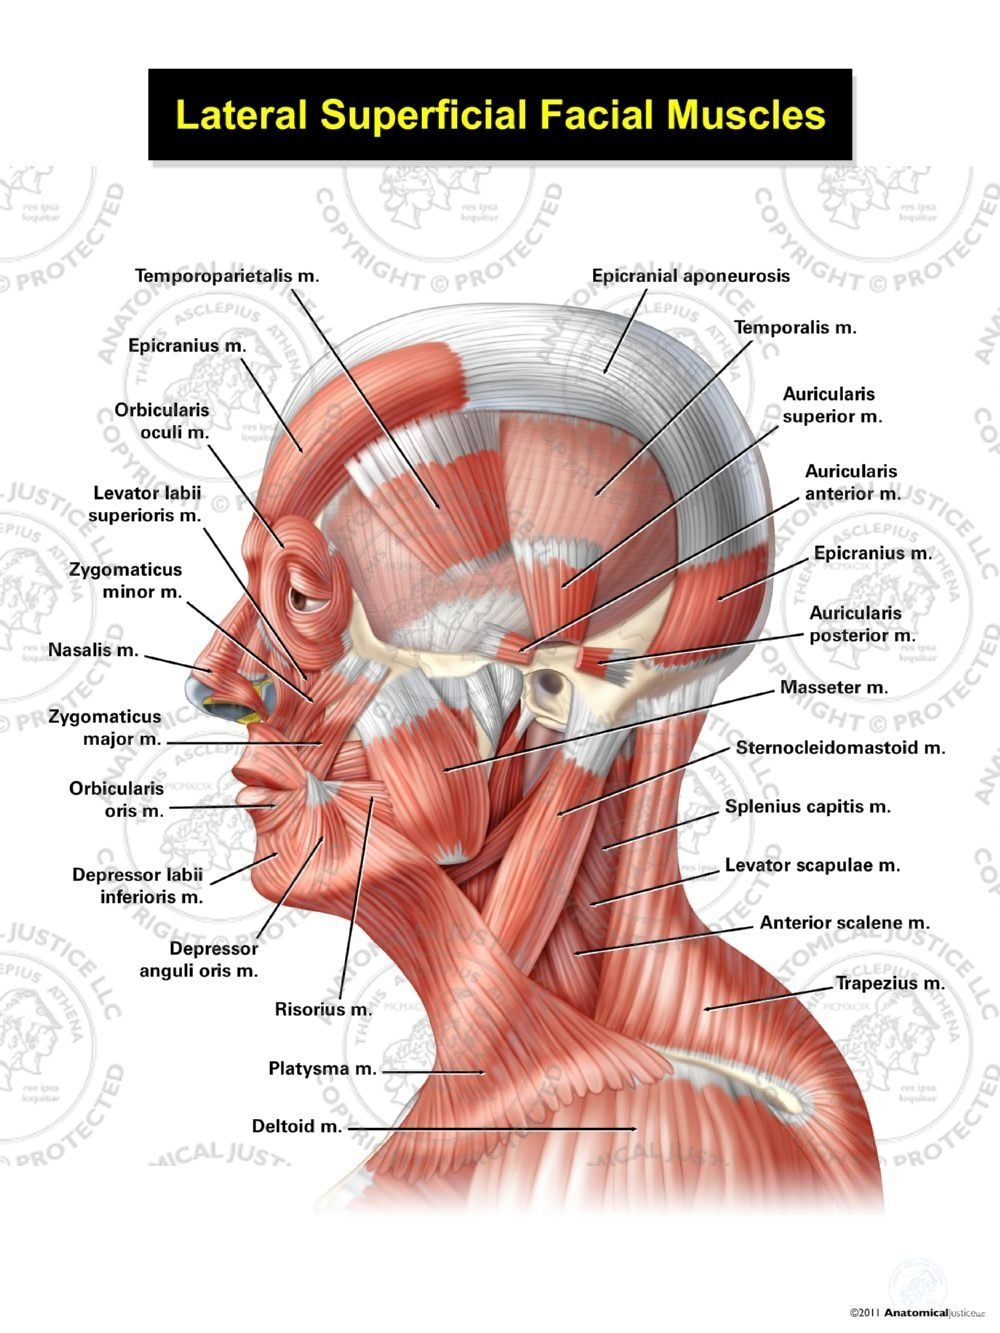 Lateral Superficial Facial Muscles Anatomical Justice